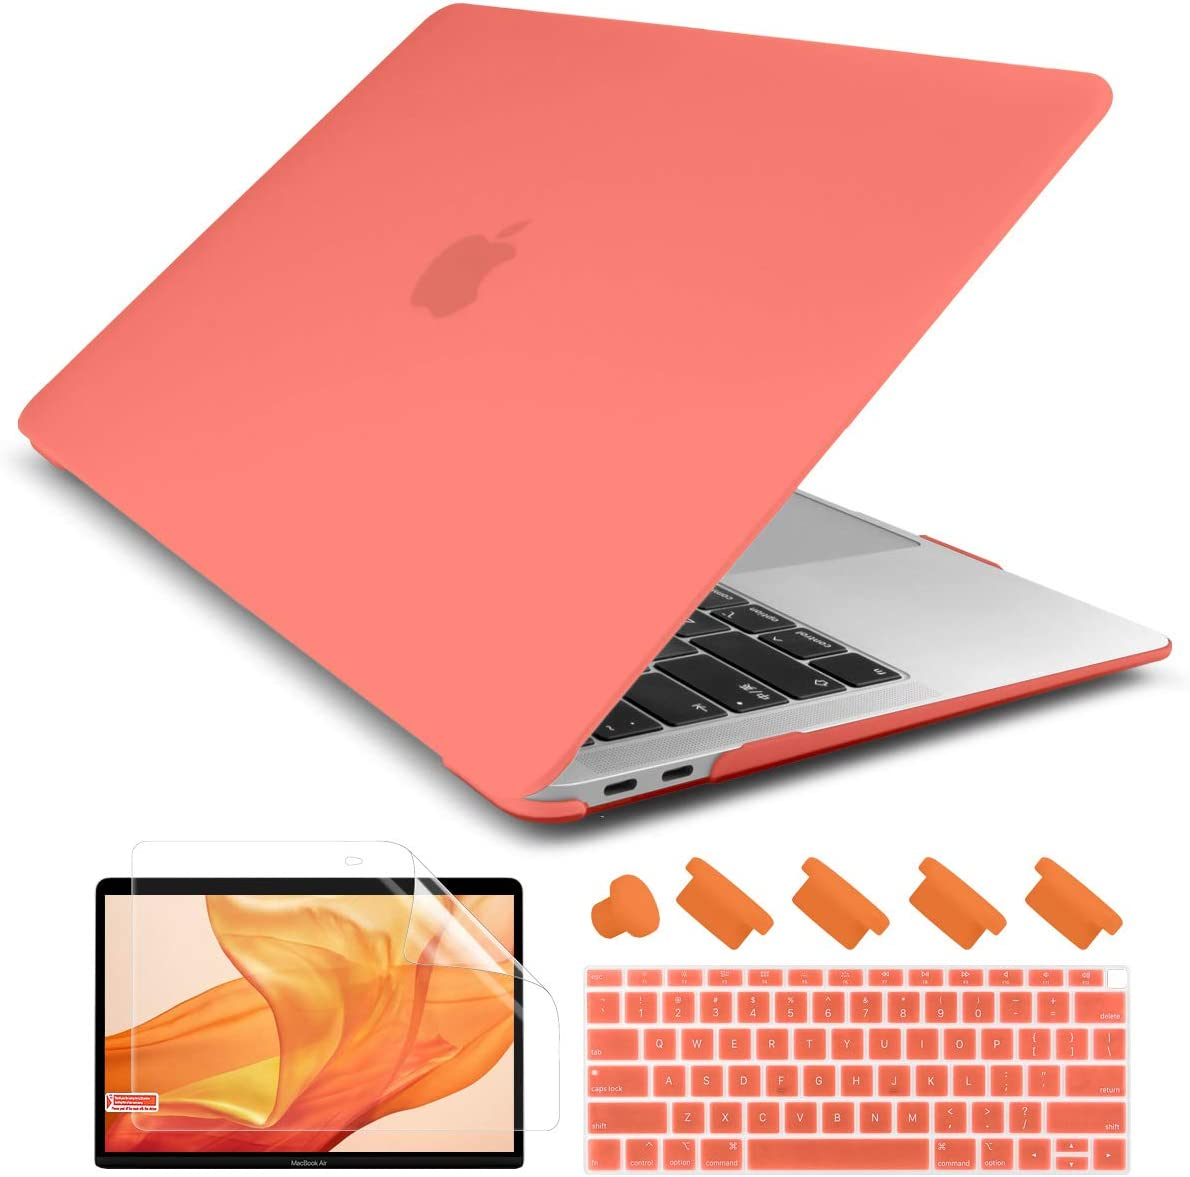 Dongke Newest MacBook Air 13 inch Case 2020 2019 2018 Release A2179/A1932, Rubberized Frosted Matte See Through Hard Case Cover for MacBook Air 13.3 inch with Retina Display Touch ID - Living Coral